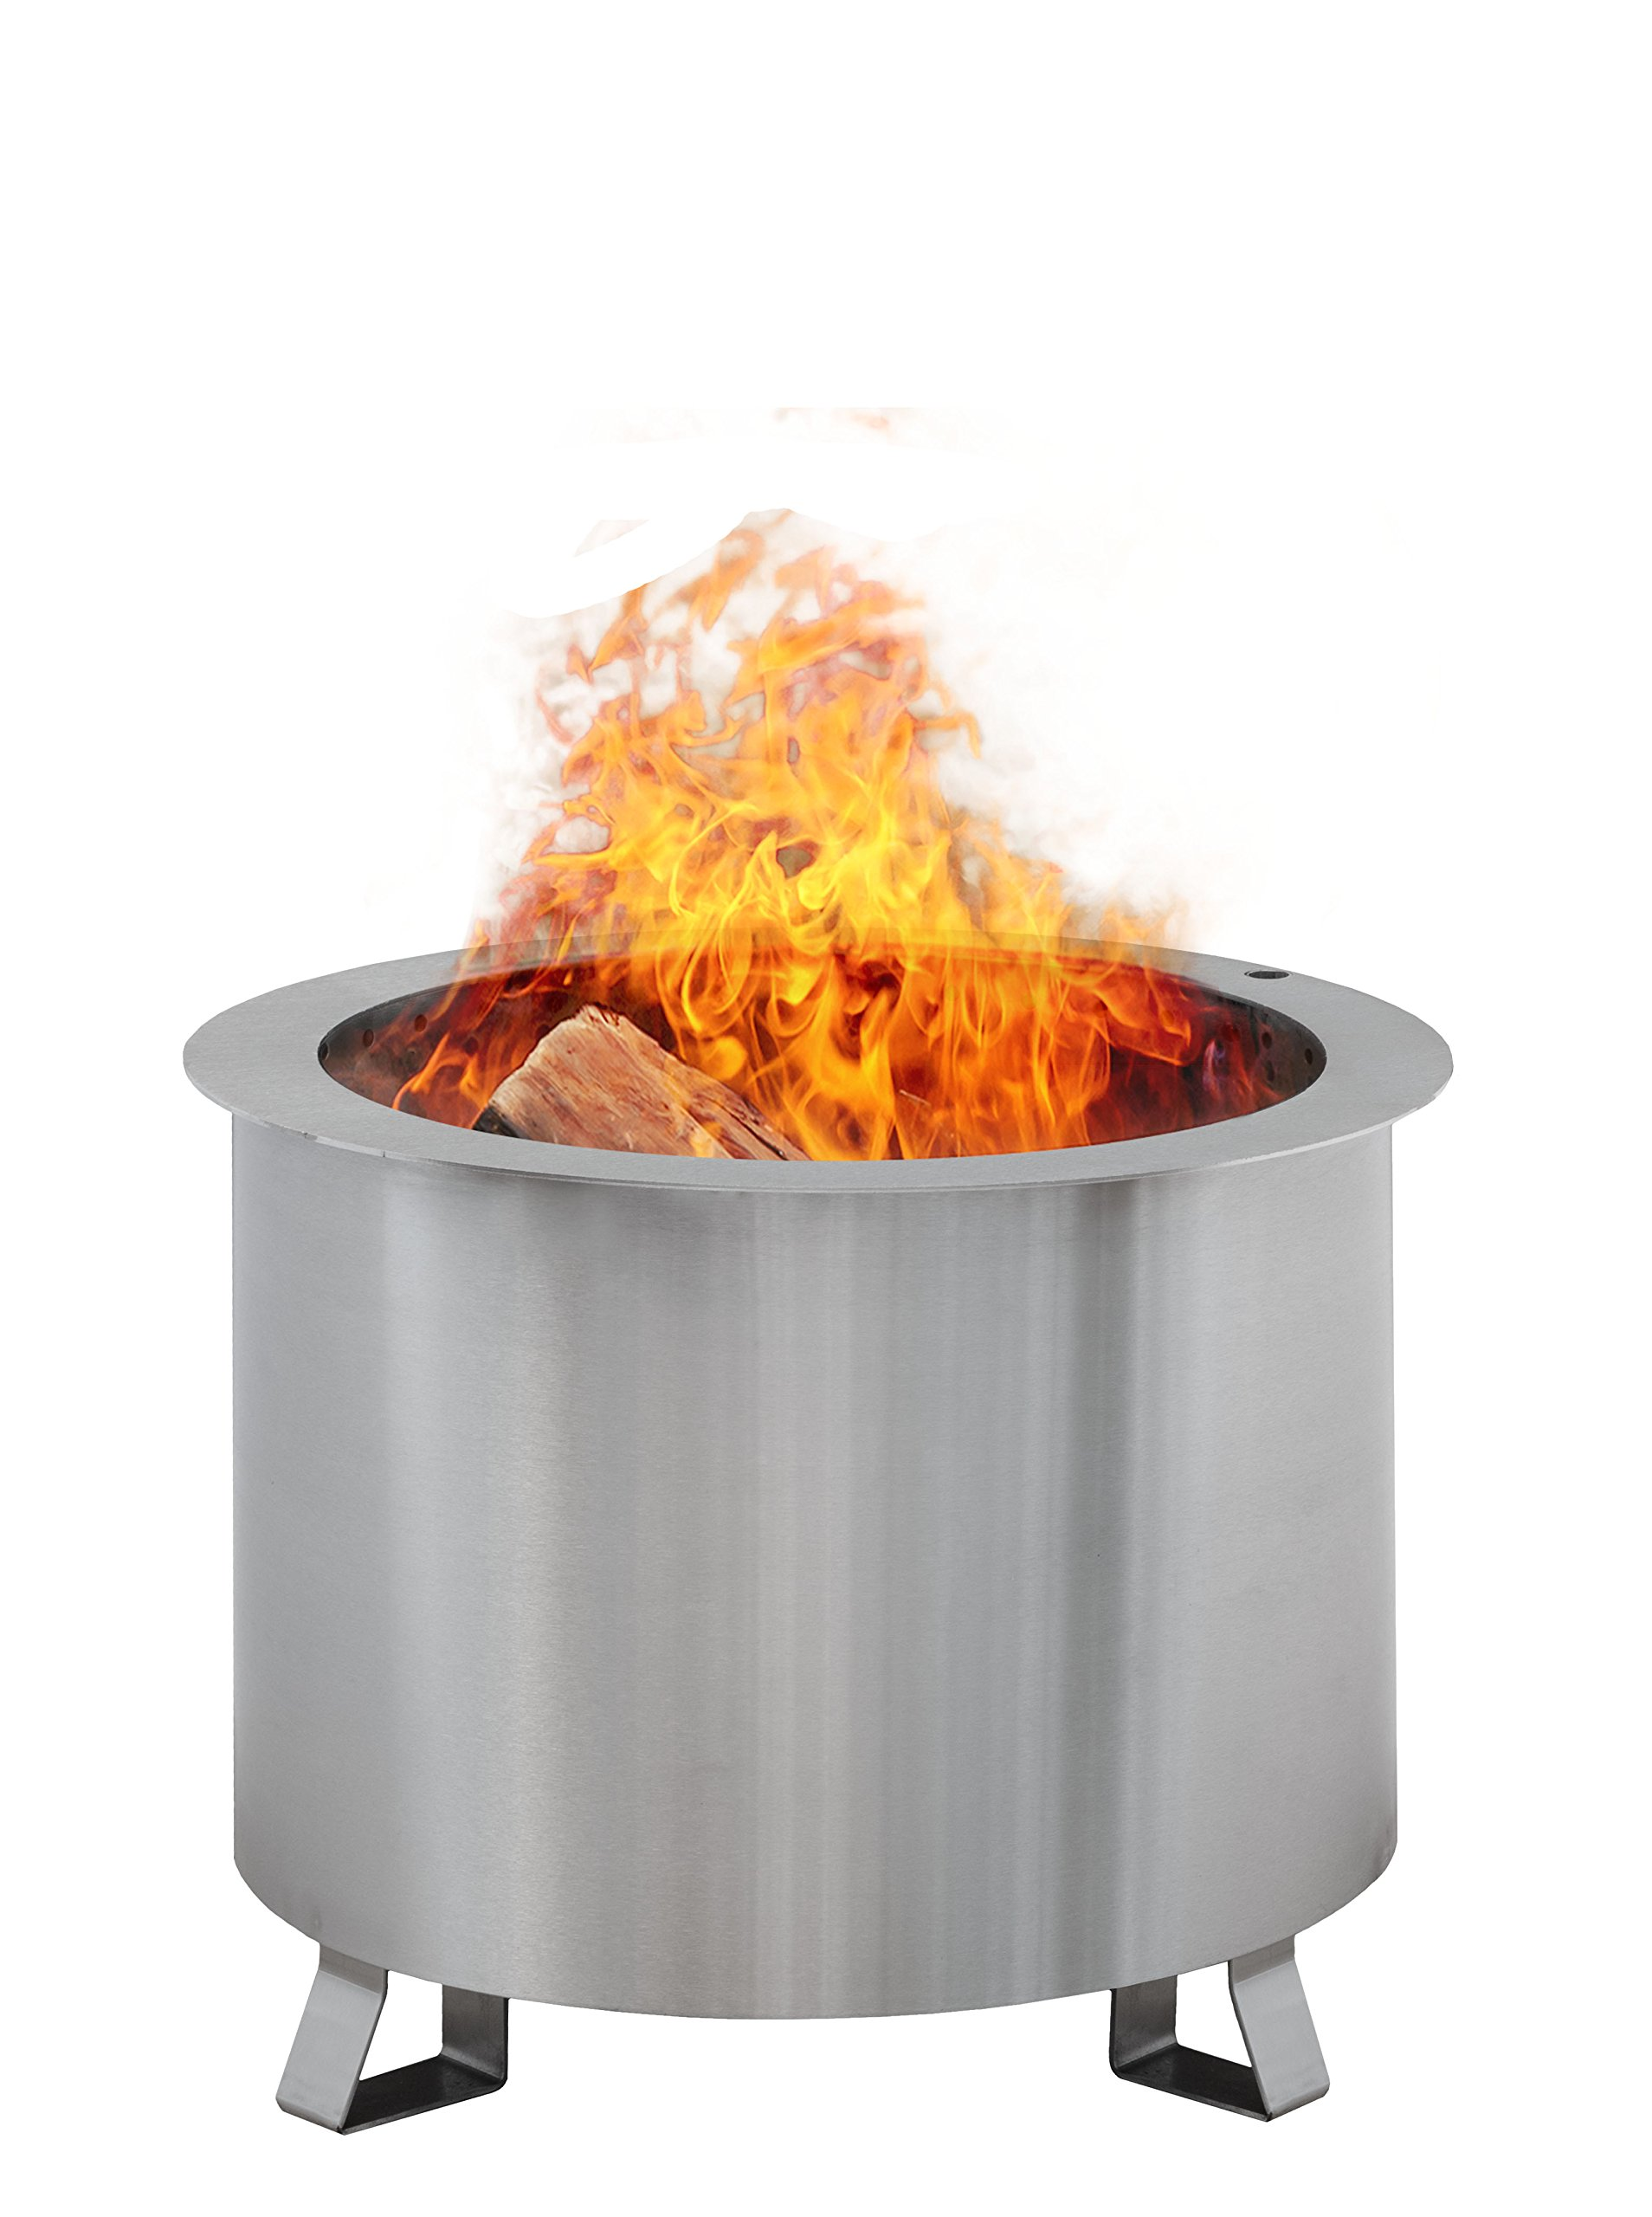 Patio Fire Pit | Smoke-Reducing, Portable, 304 Stainless Steel, 100% American Made by Double Flame